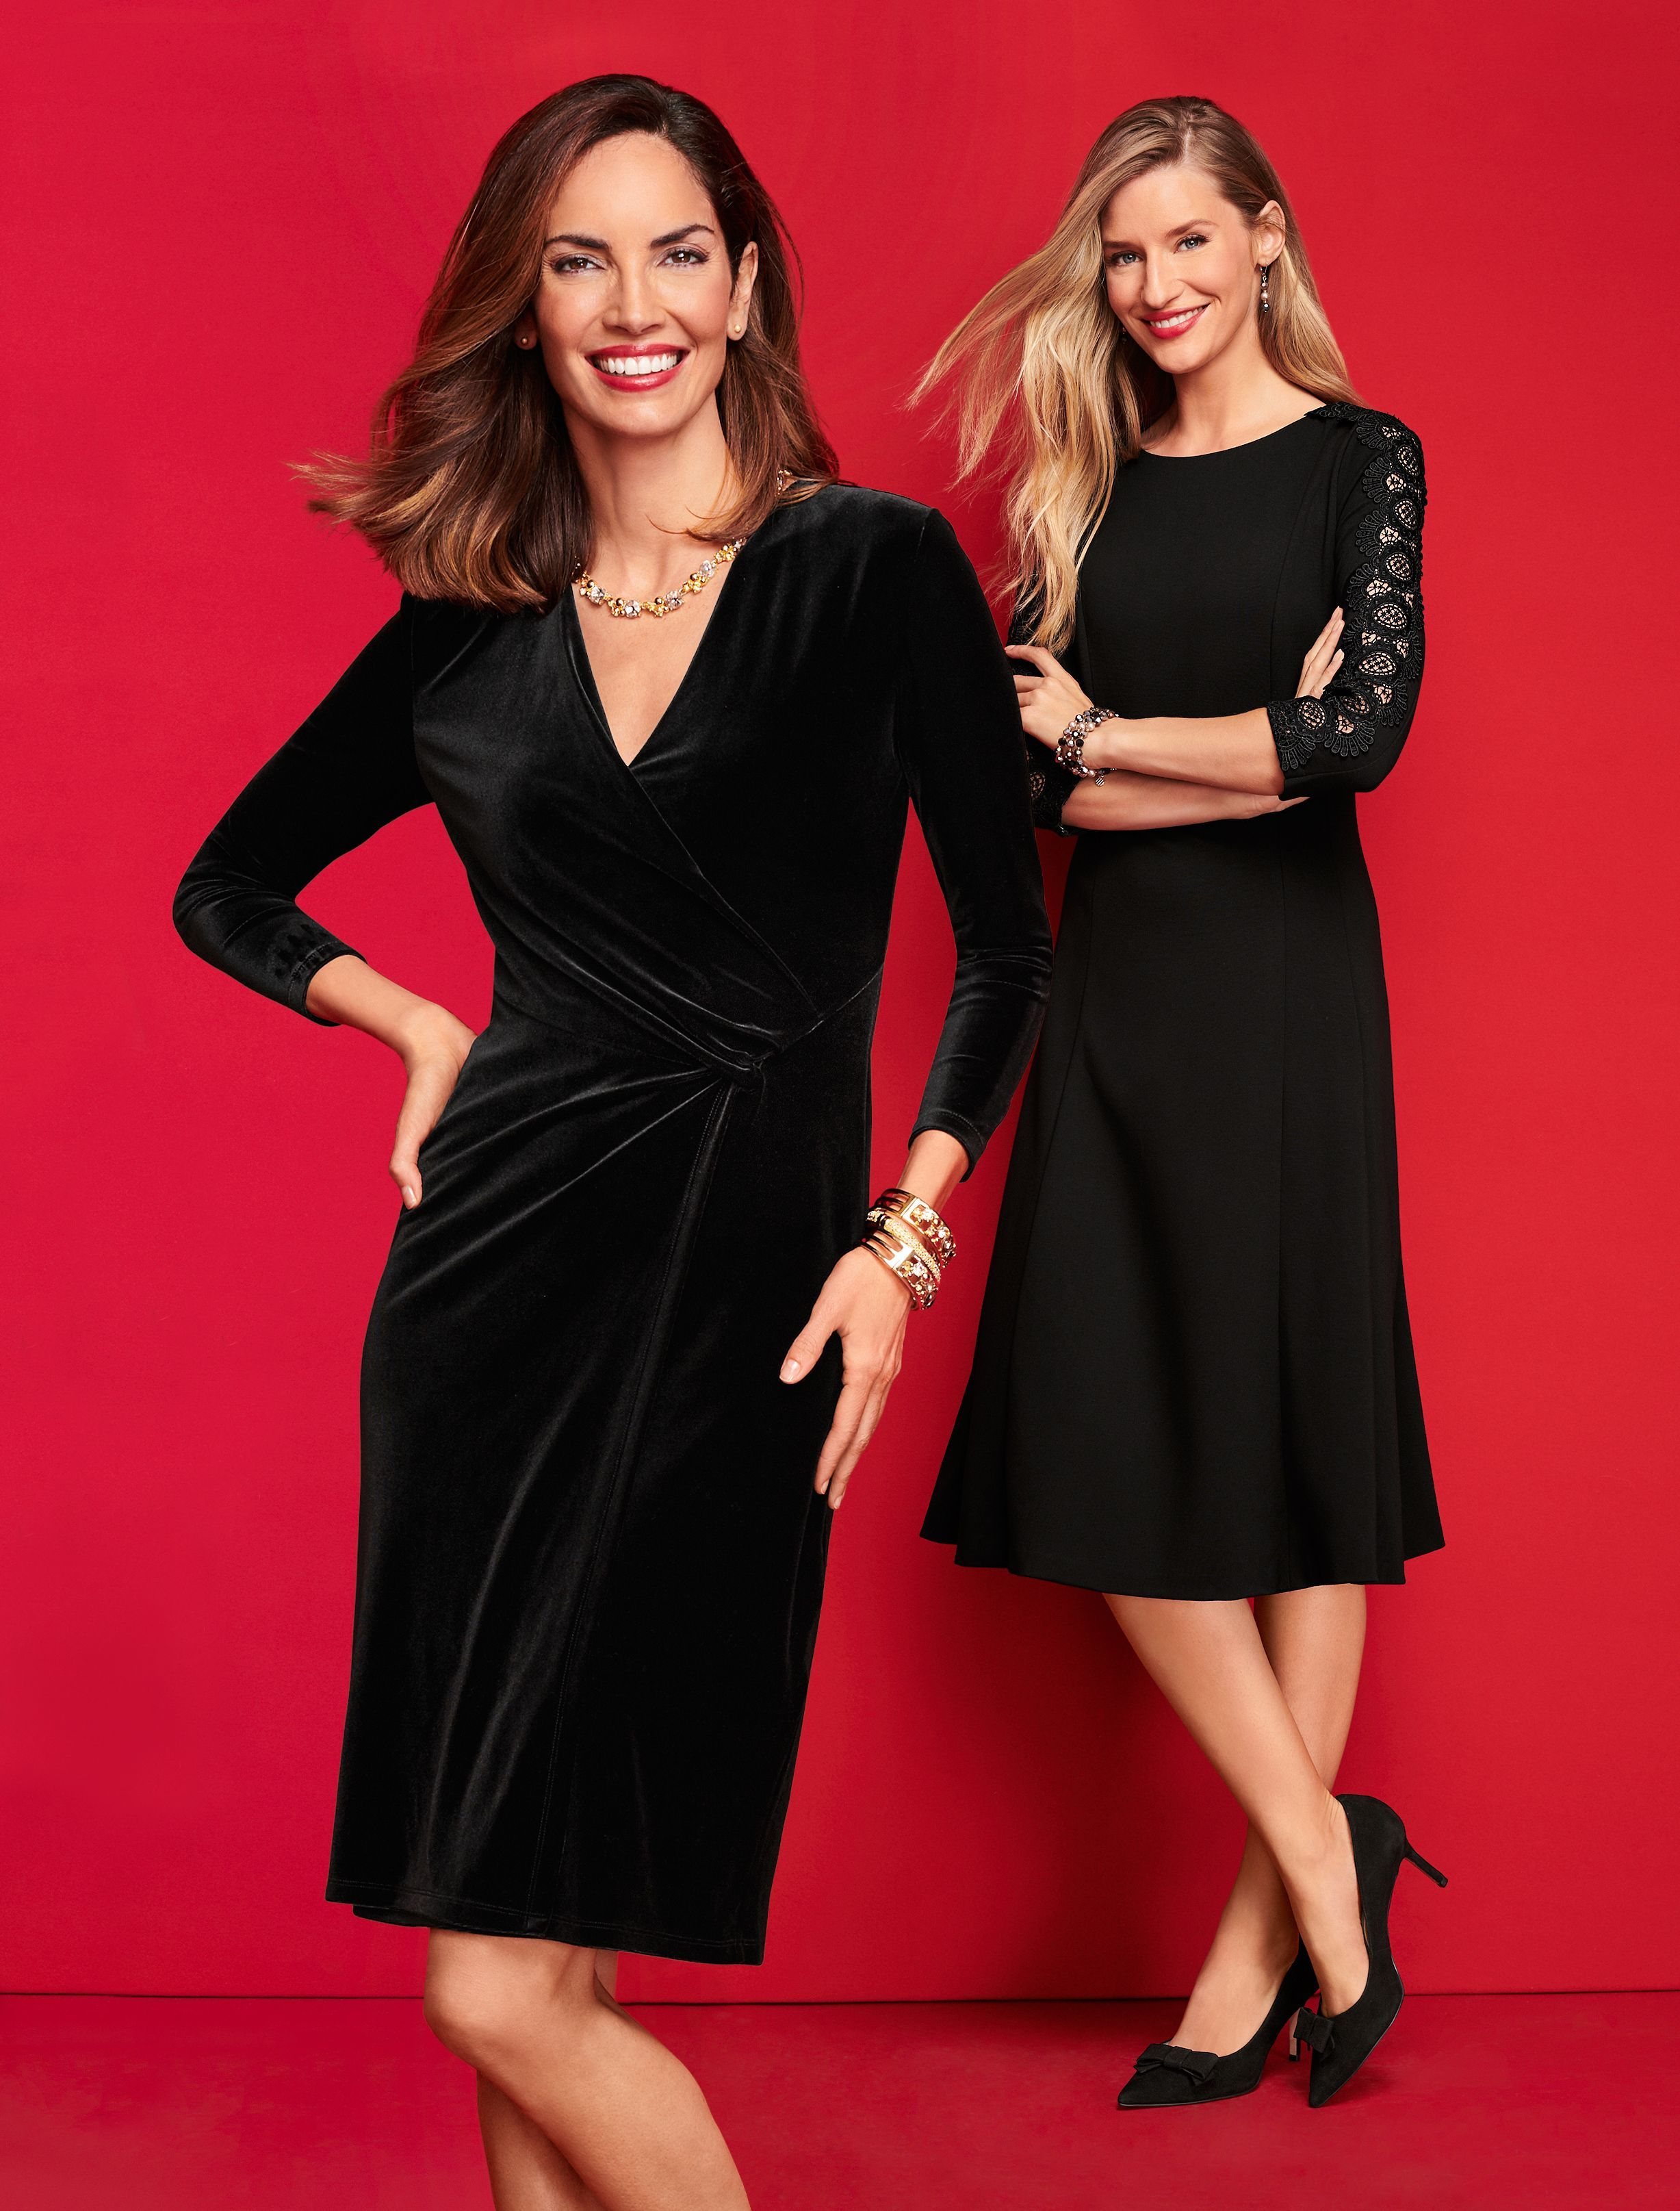 Little Black Dresses Sophisticated And Stylish And A Beautiful Reason To Get Dressed Up Talbots Winter 2018 Dresses Talbots Outfits Fit Flare Dress [ 3230 x 2455 Pixel ]